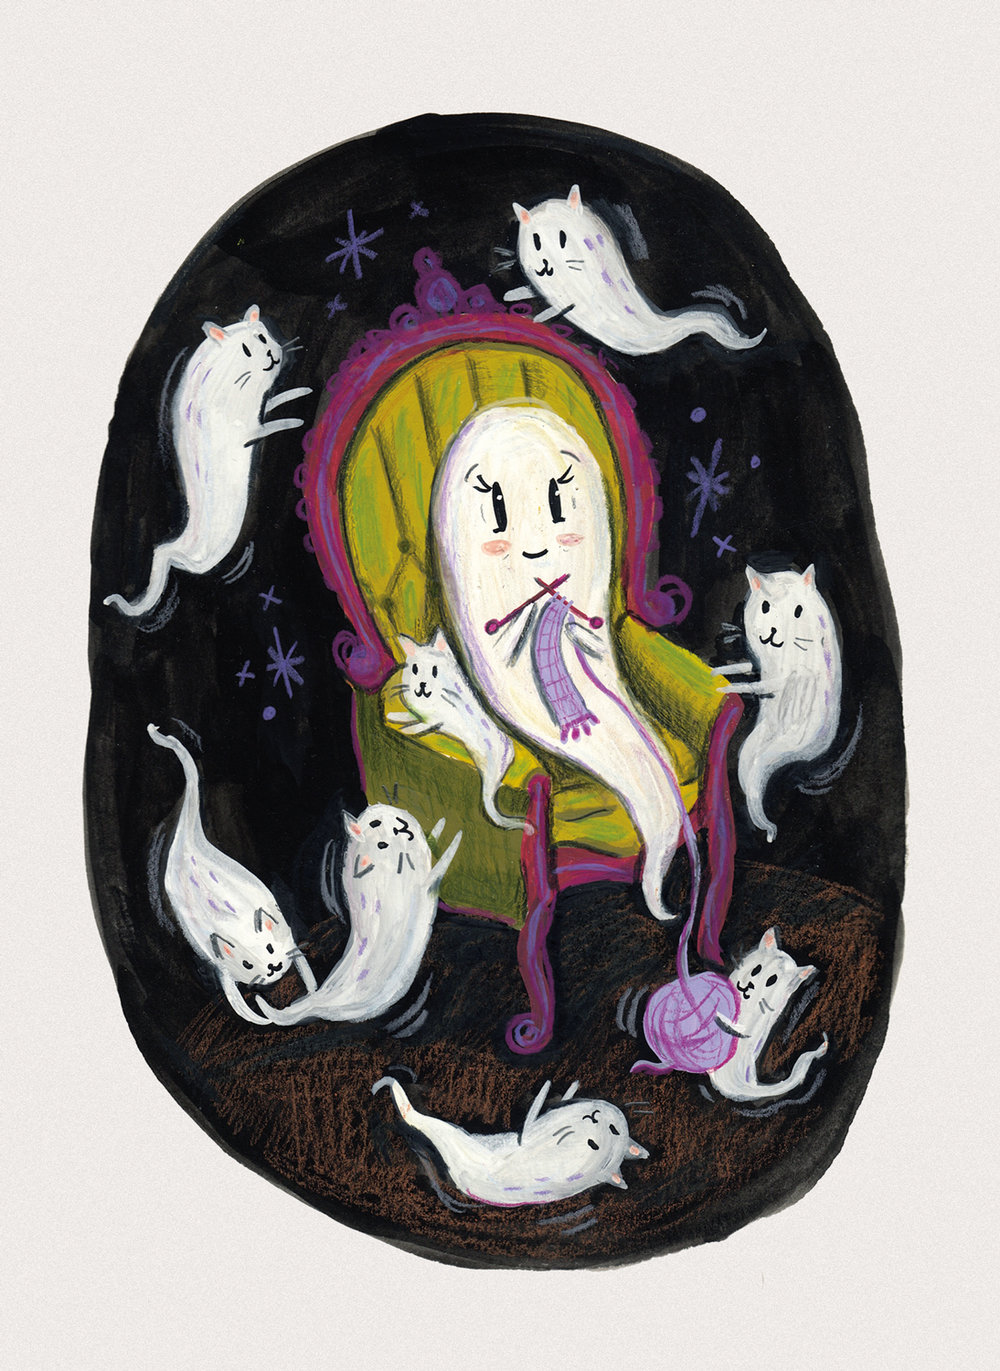 The Ghost of a Cat Lady